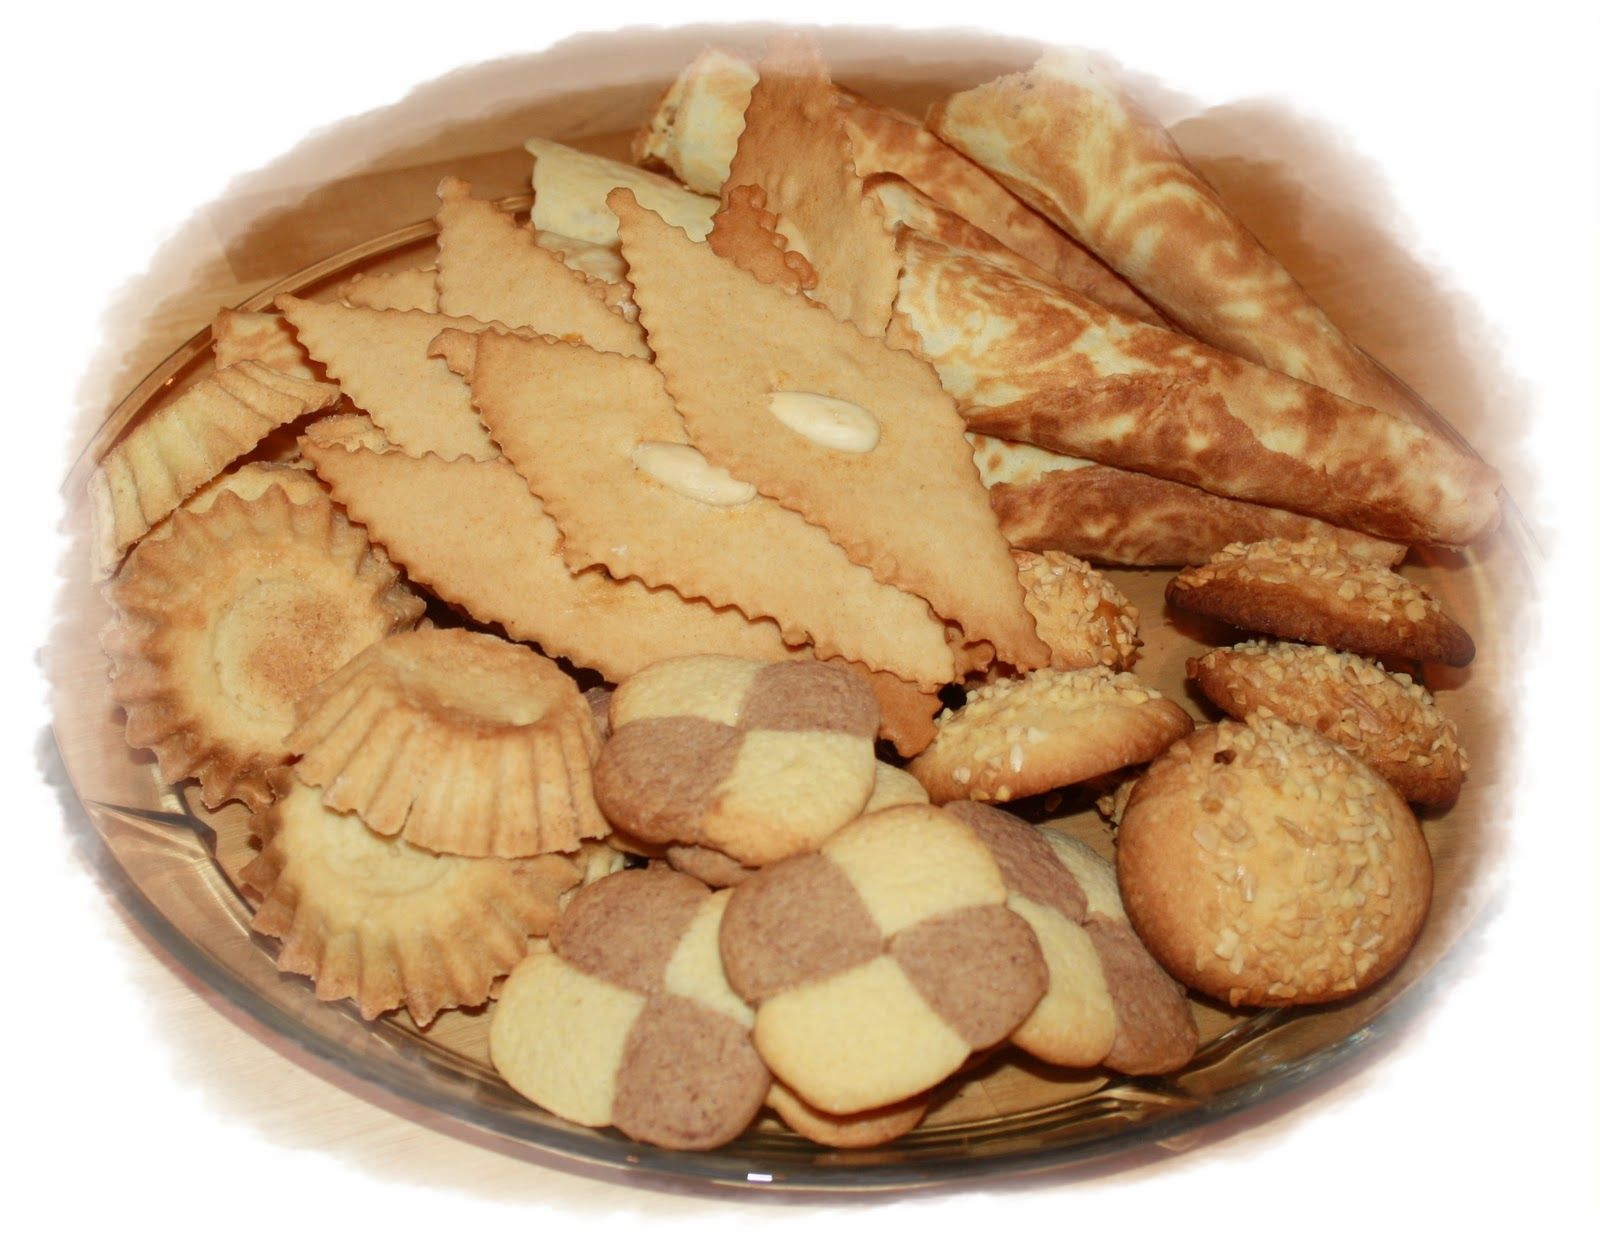 Norwegian Christmas Cookies The Tradition Is That You Should Make 7